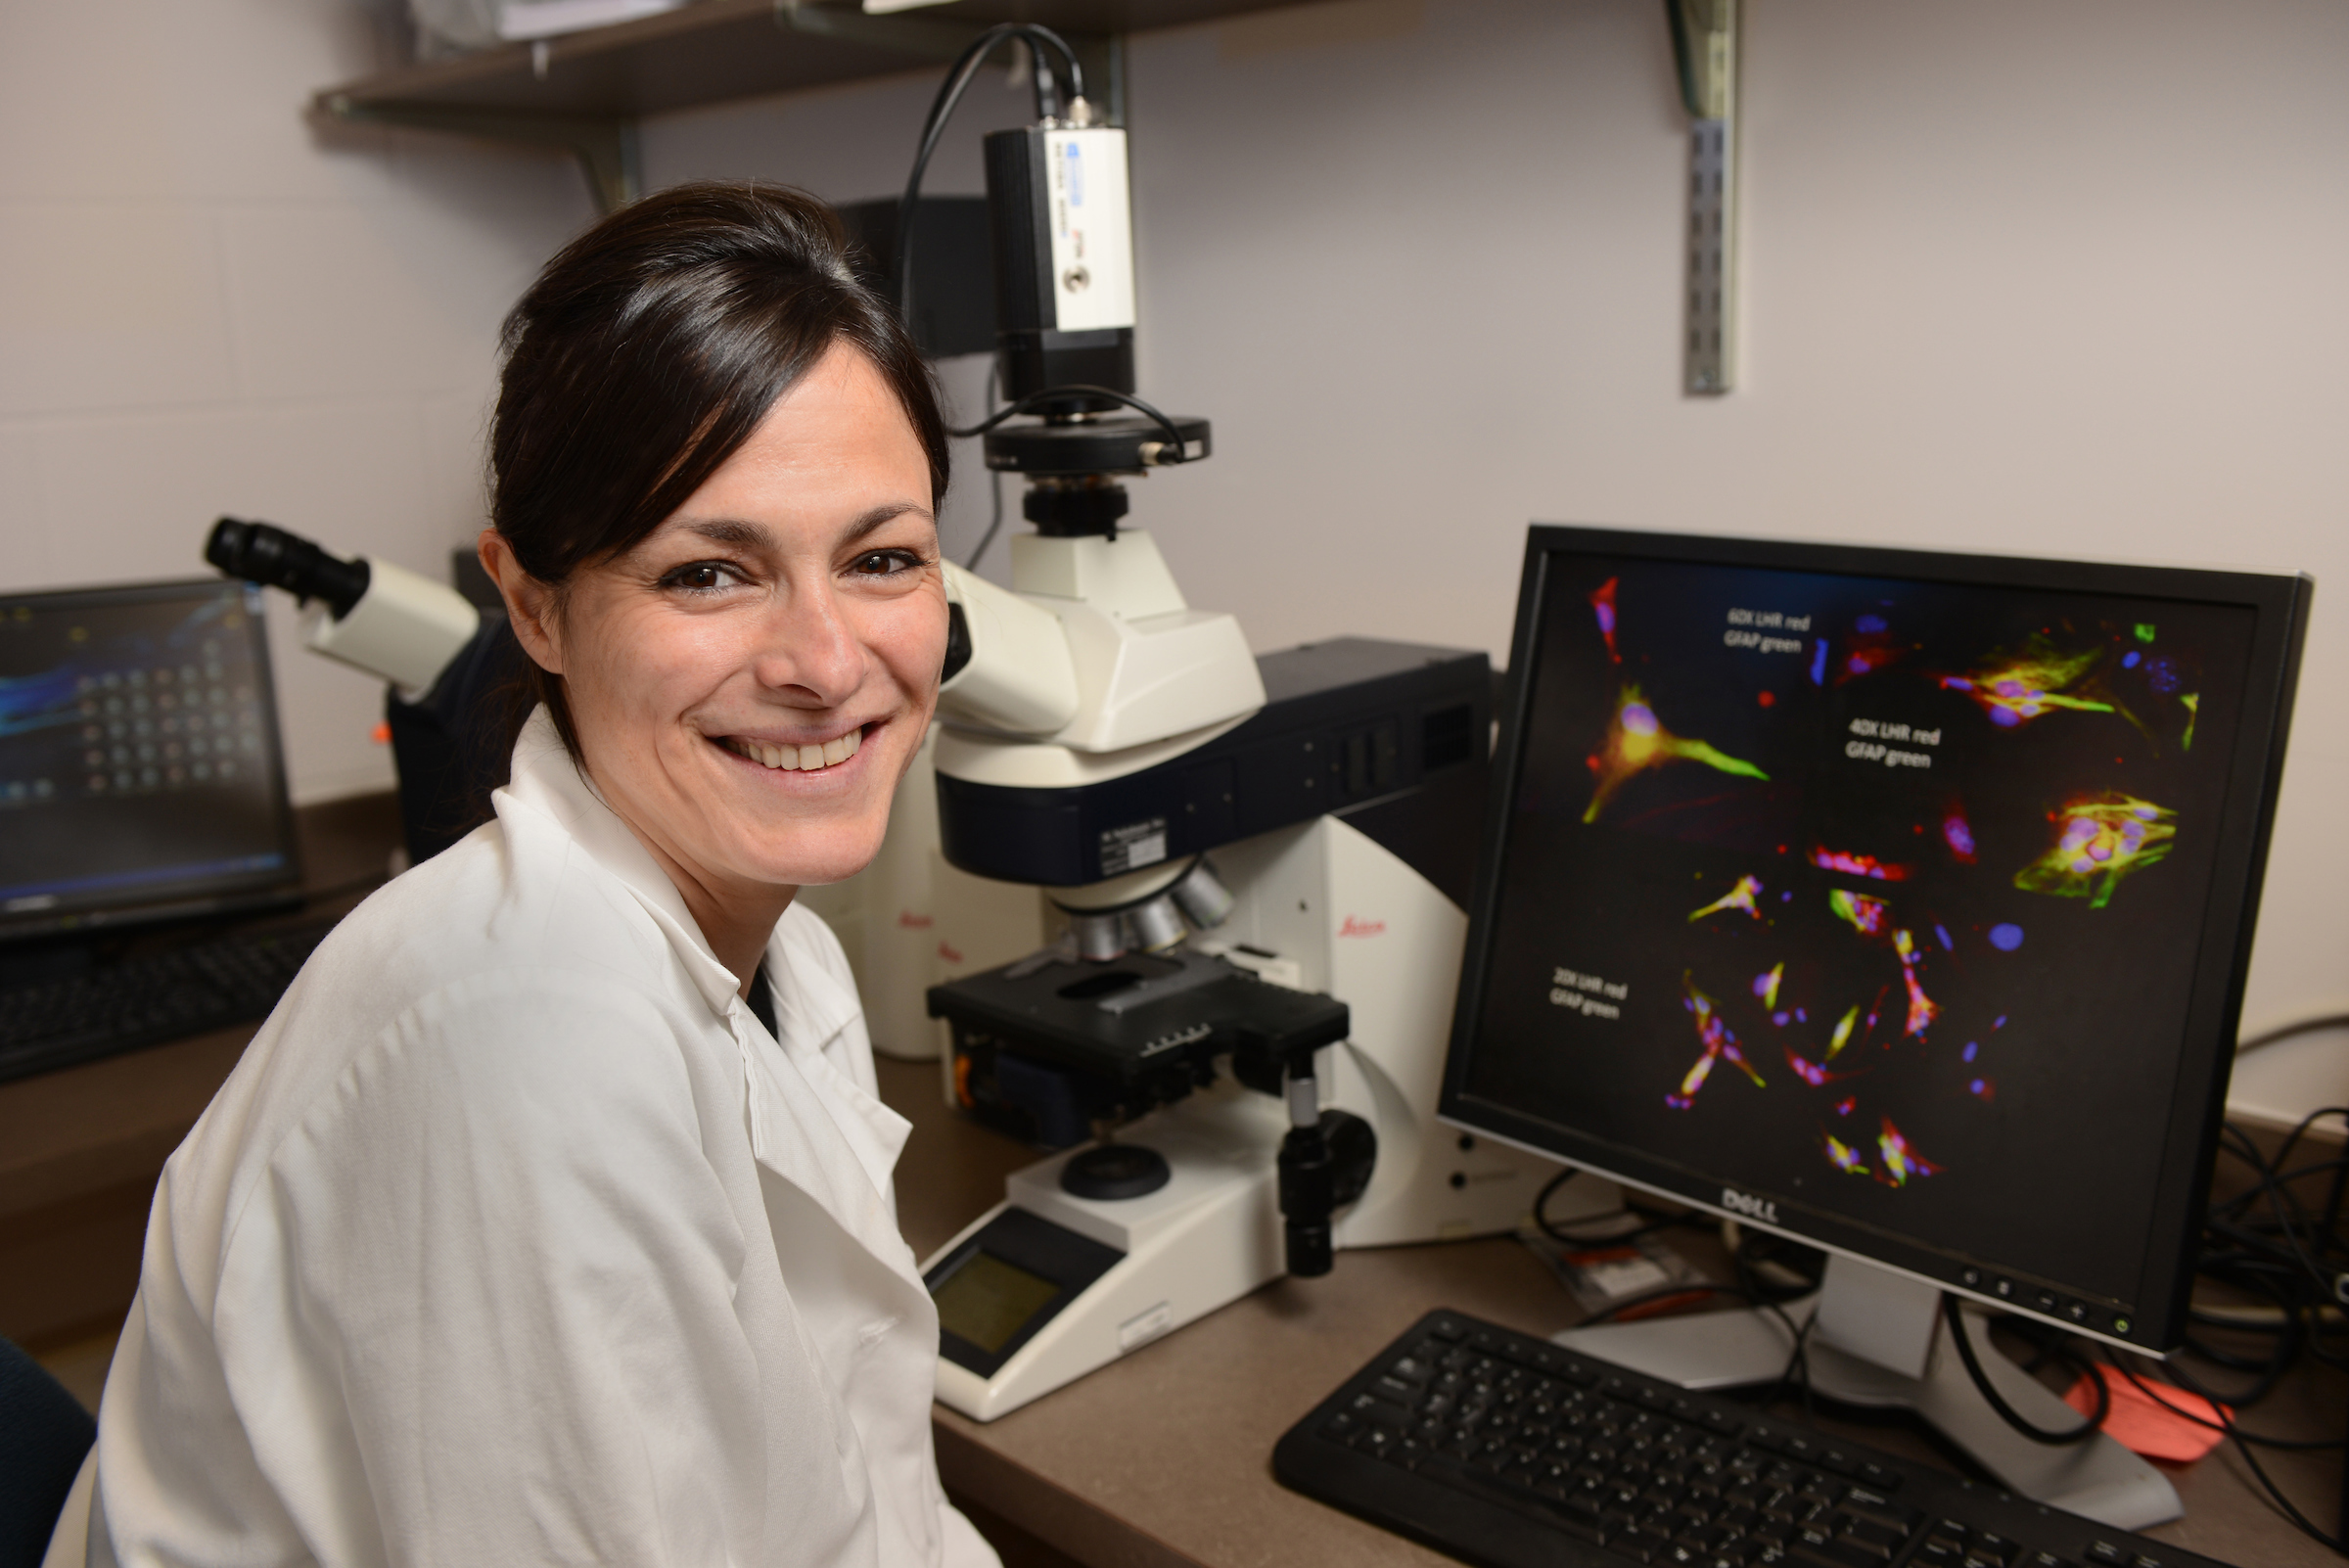 Gemma Casadesus Smith, an associate professor in Kent State's Department of Biological Sciences, has been awarded a five-year, $1.8 million grant from the National Institute on Aging at the National Institutes of Health.